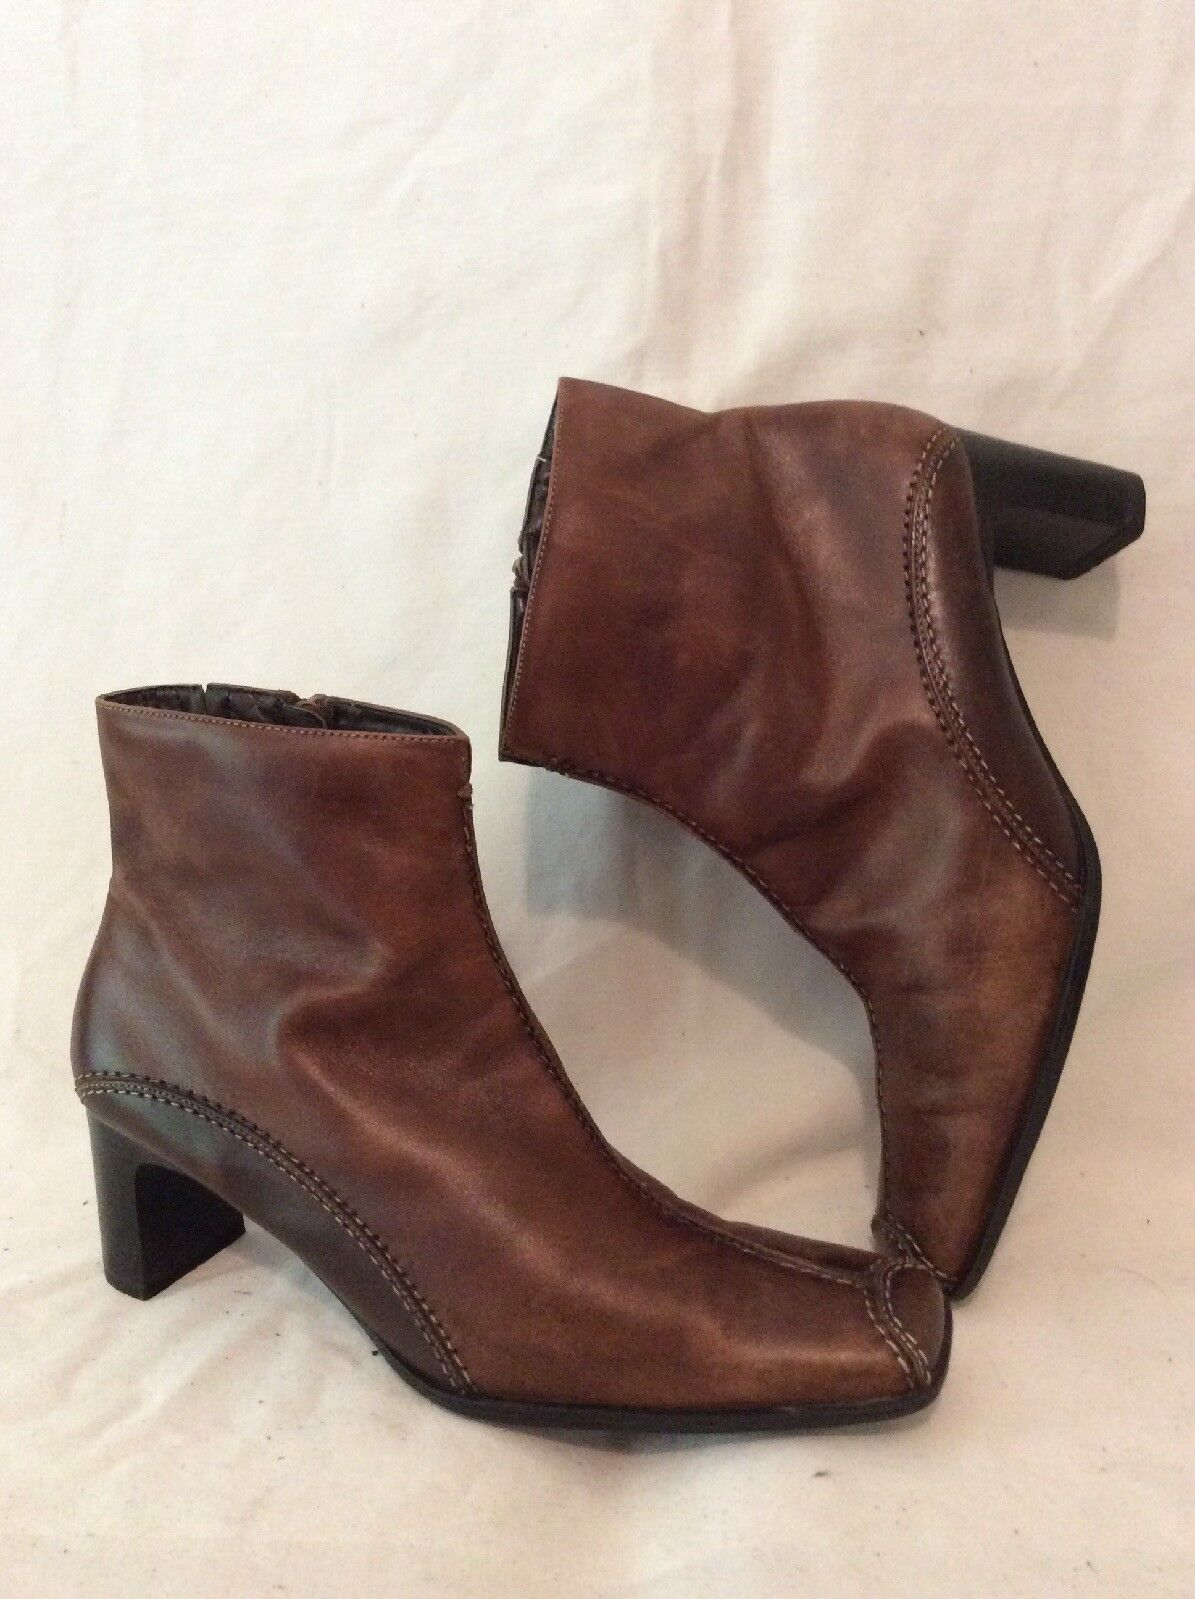 Sally O'hara Brown Ankle Leather Boots Size 38